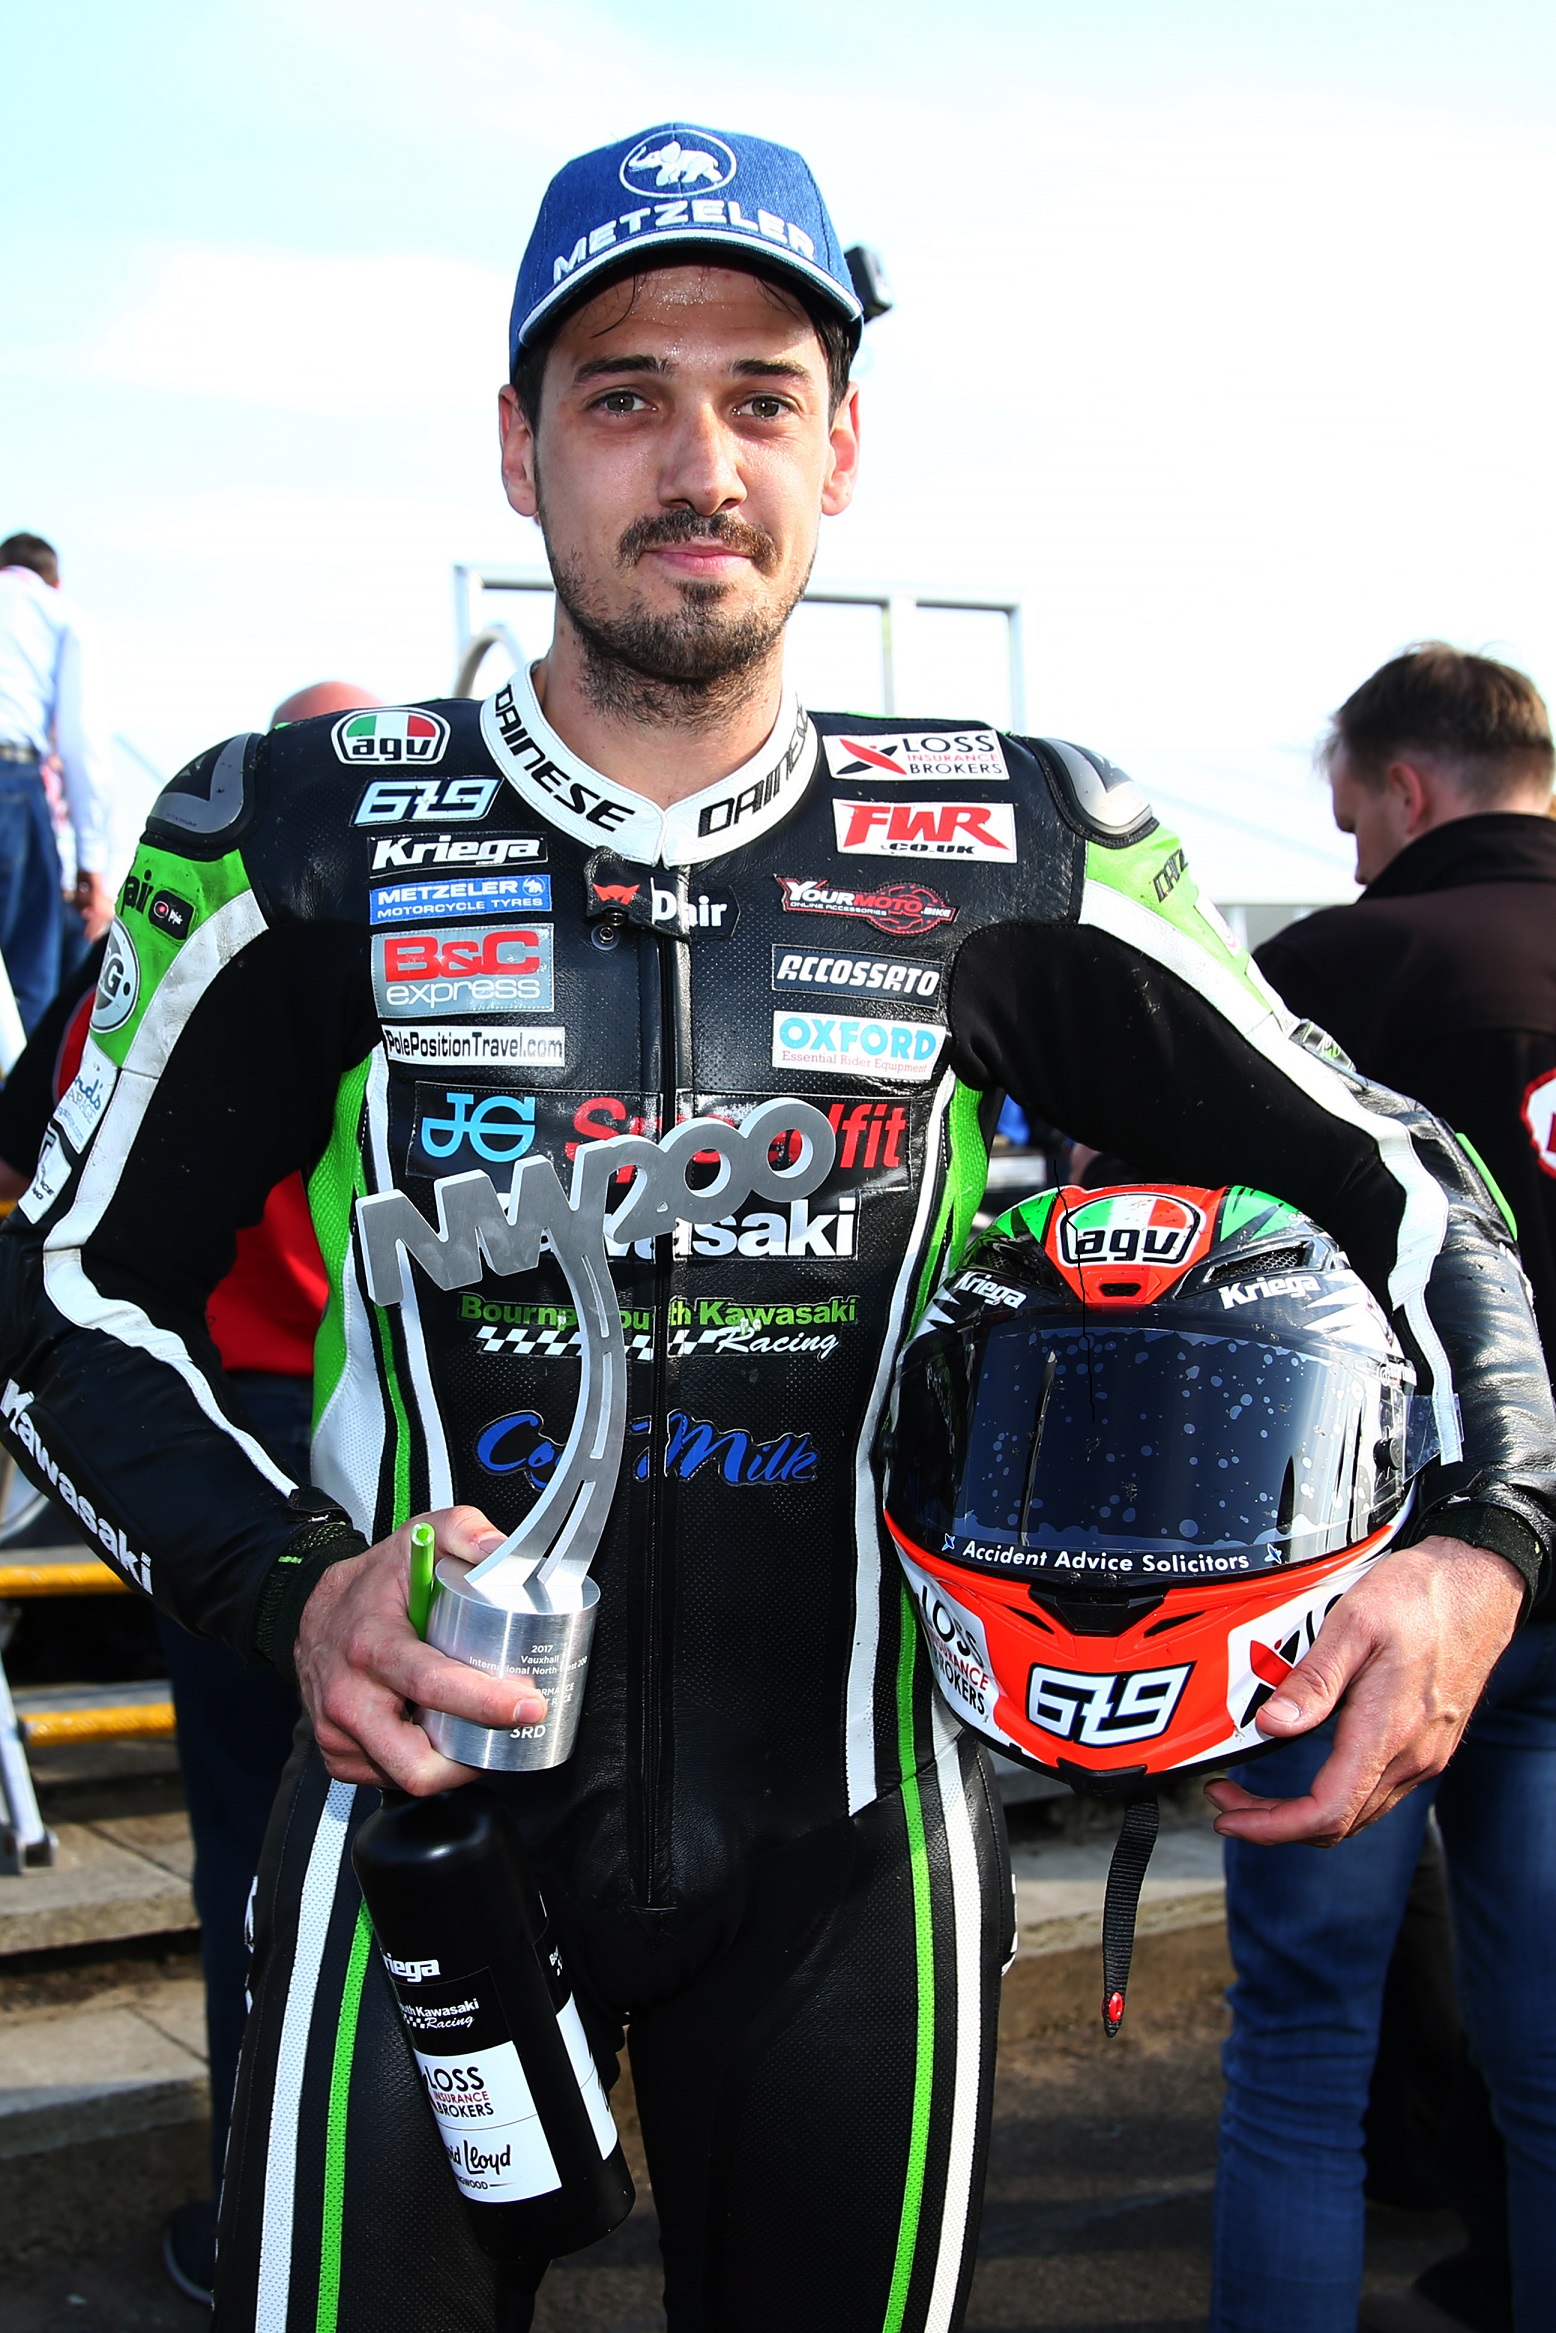 North West 200, Portstewart, Coleraine and Portrush, Northern Ireland. 11th May 2017. James Hillier, Ringwood, JG Speedfit Kawasaki